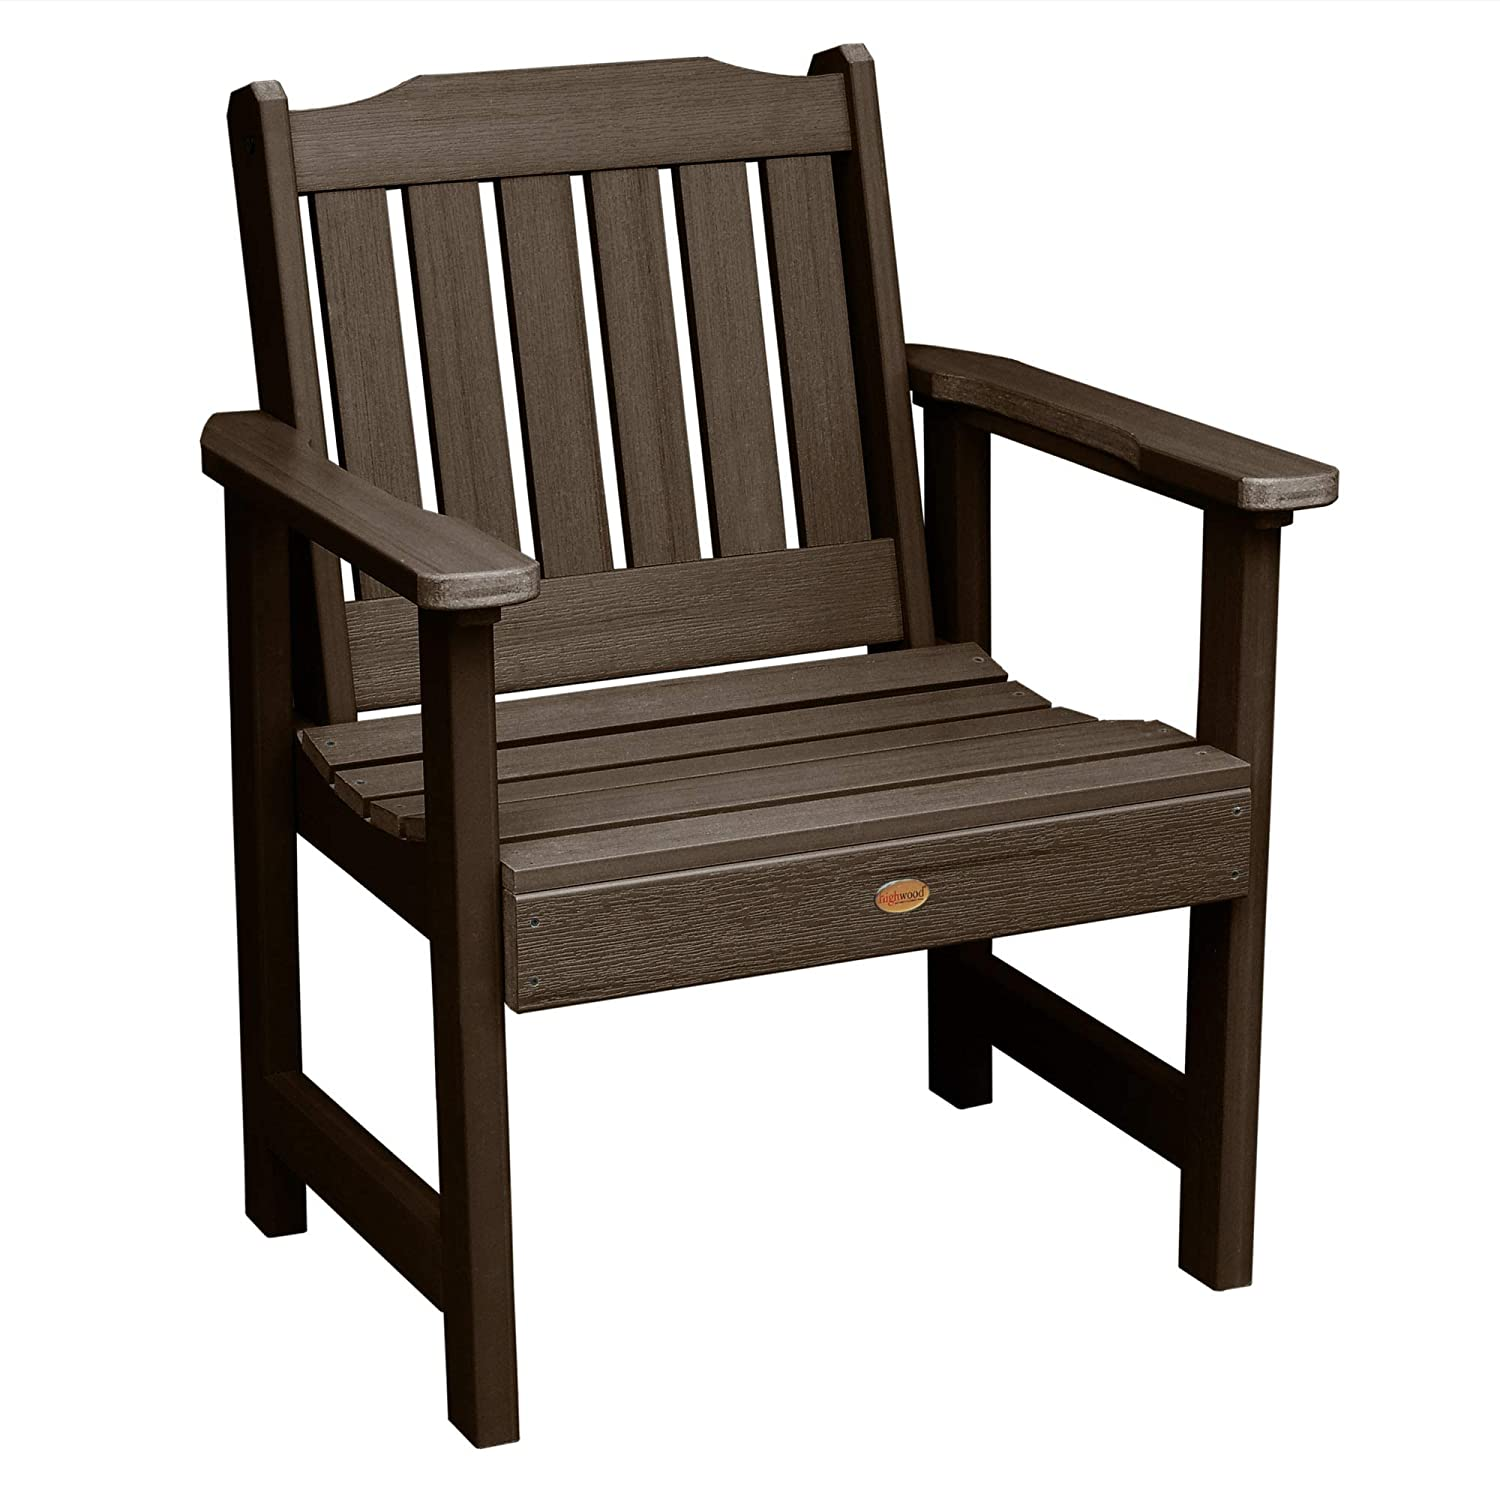 Highwood Lehigh Garden Chair, Weathered Acorn